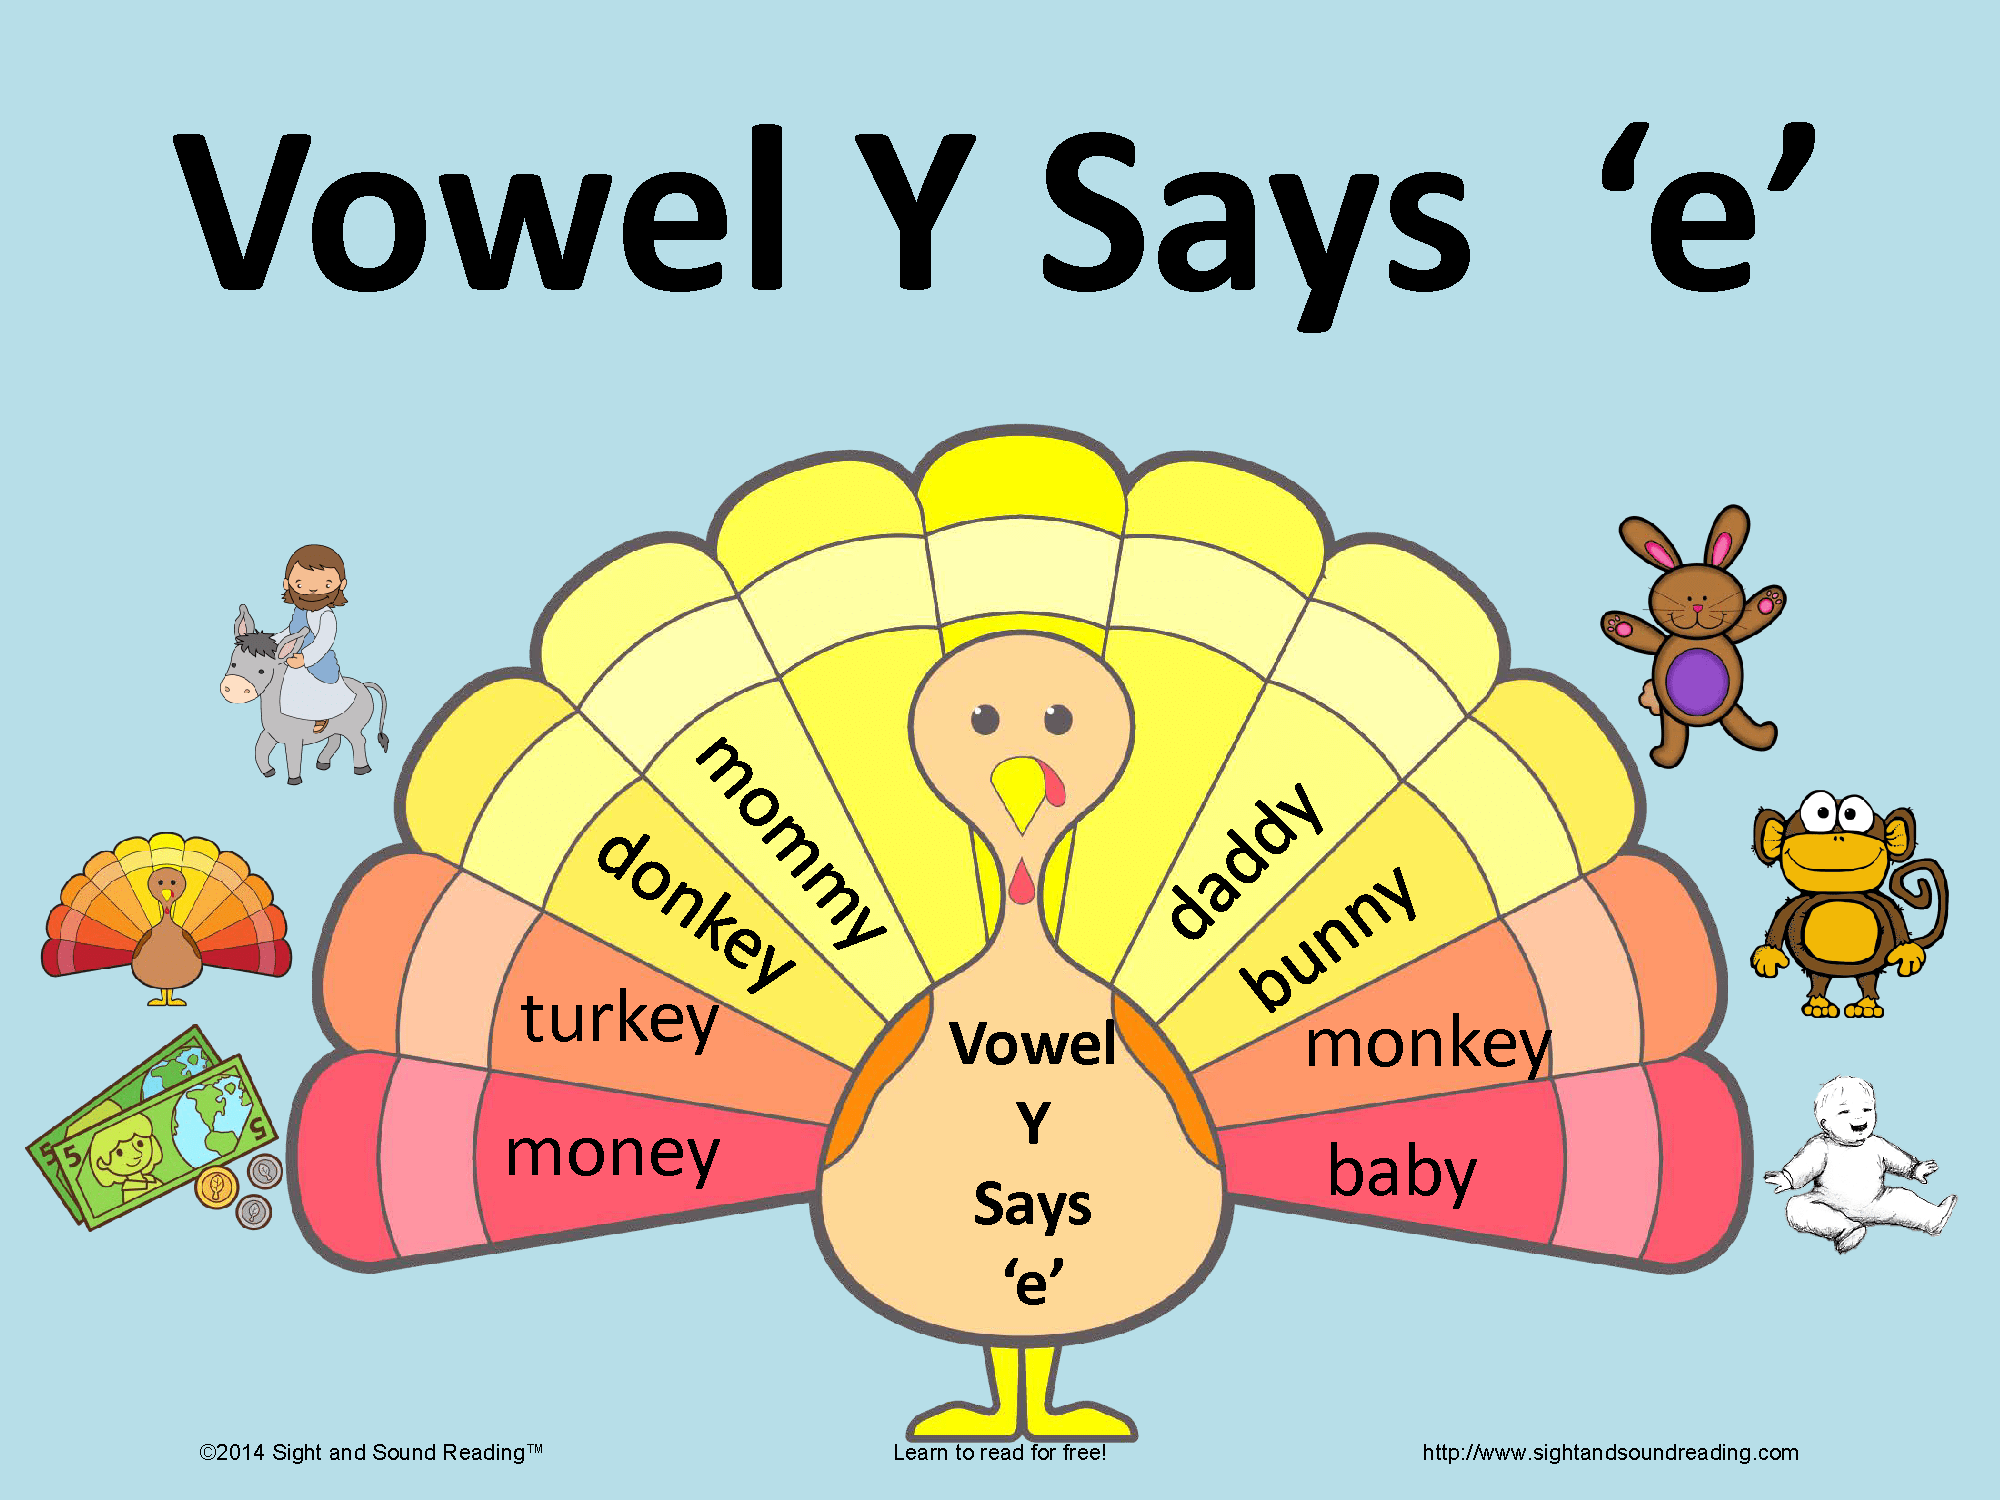 Fun Activity To Help Teach The Vowel Y Making The Long E